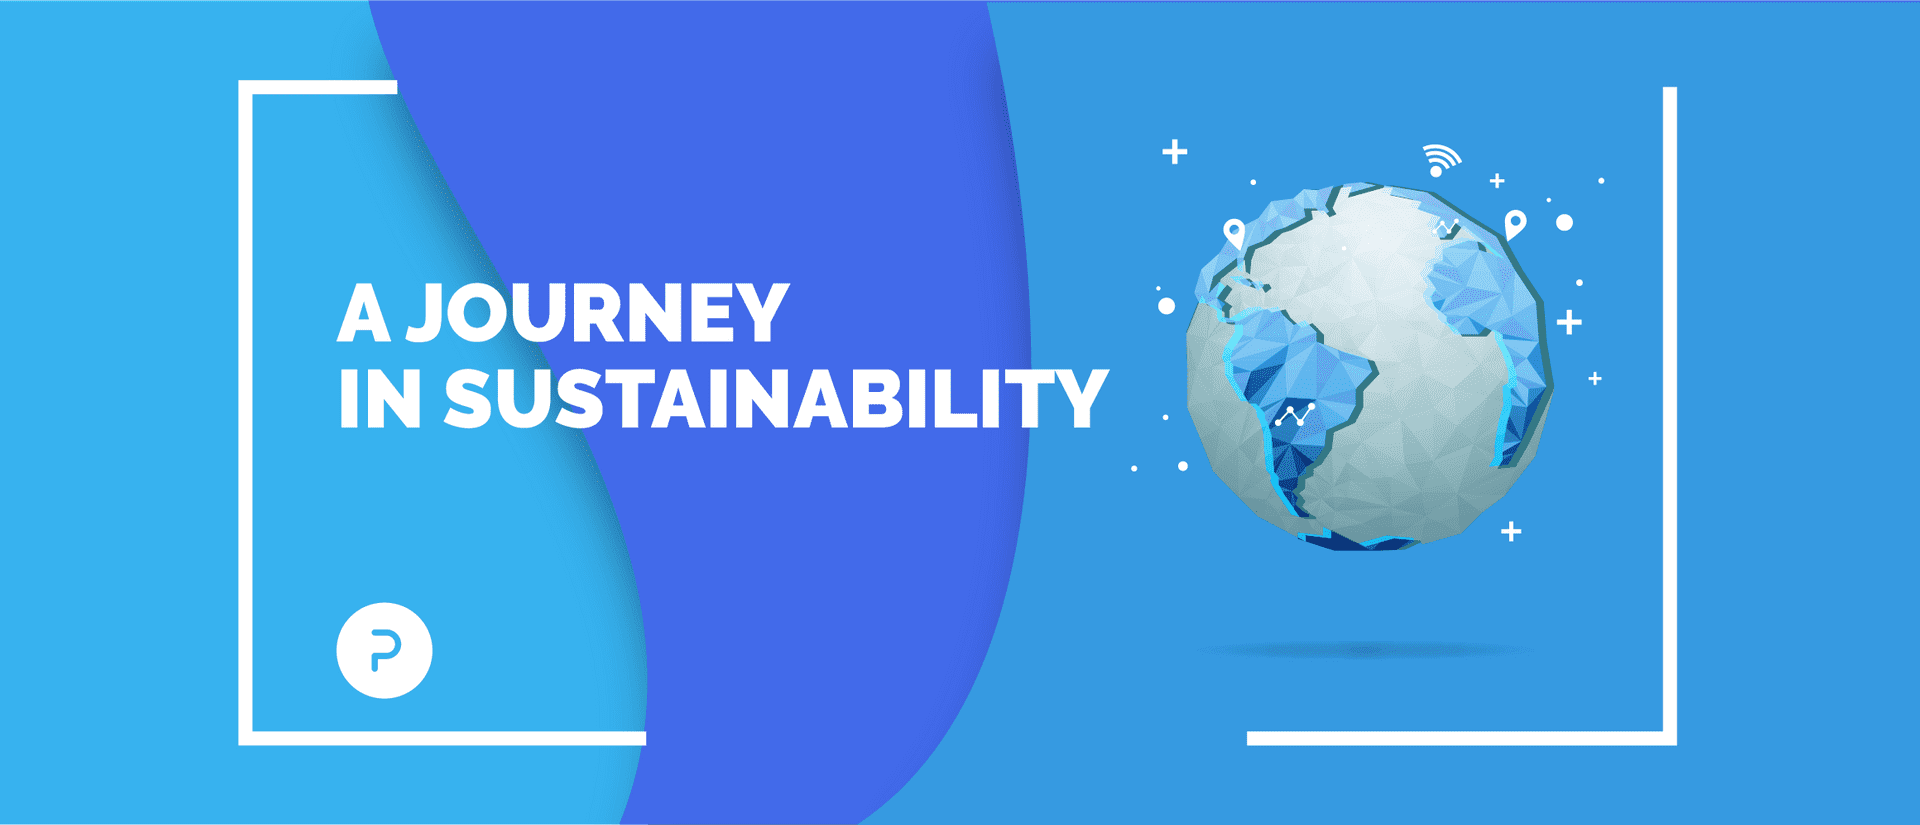 A Journey in Sustainability: The First Tech B Corp in Hong Kong